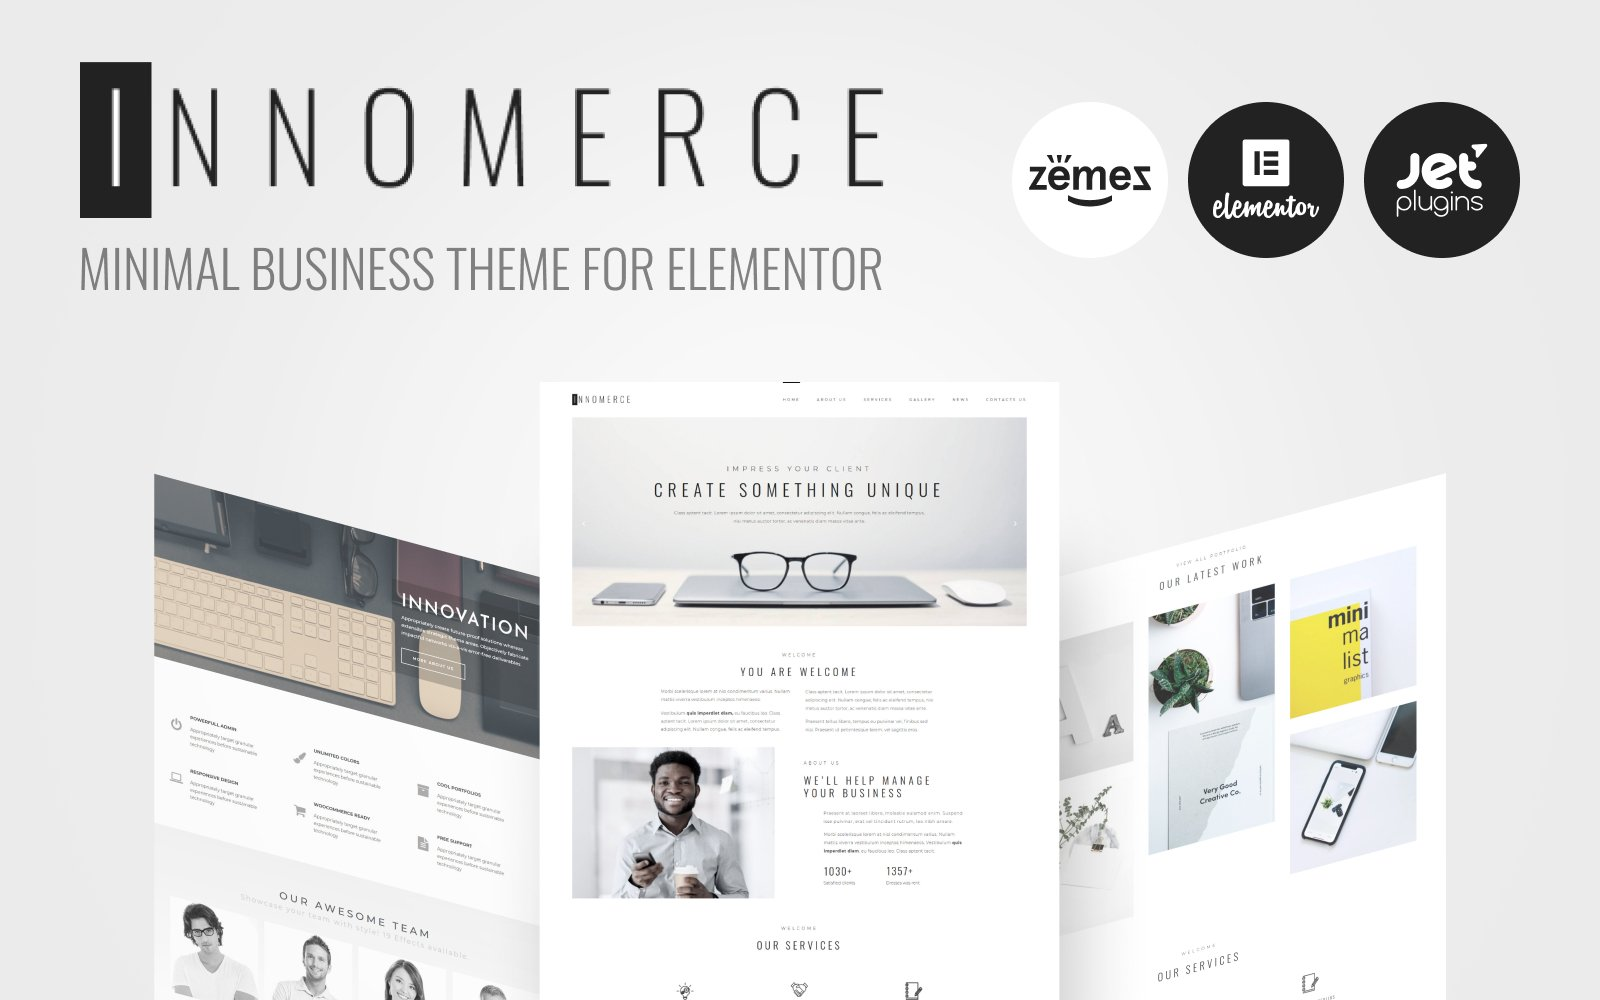 Responsivt Innomerce - Business Multipurpose Minimal Elementor WordPress-tema #81170 - skärmbild